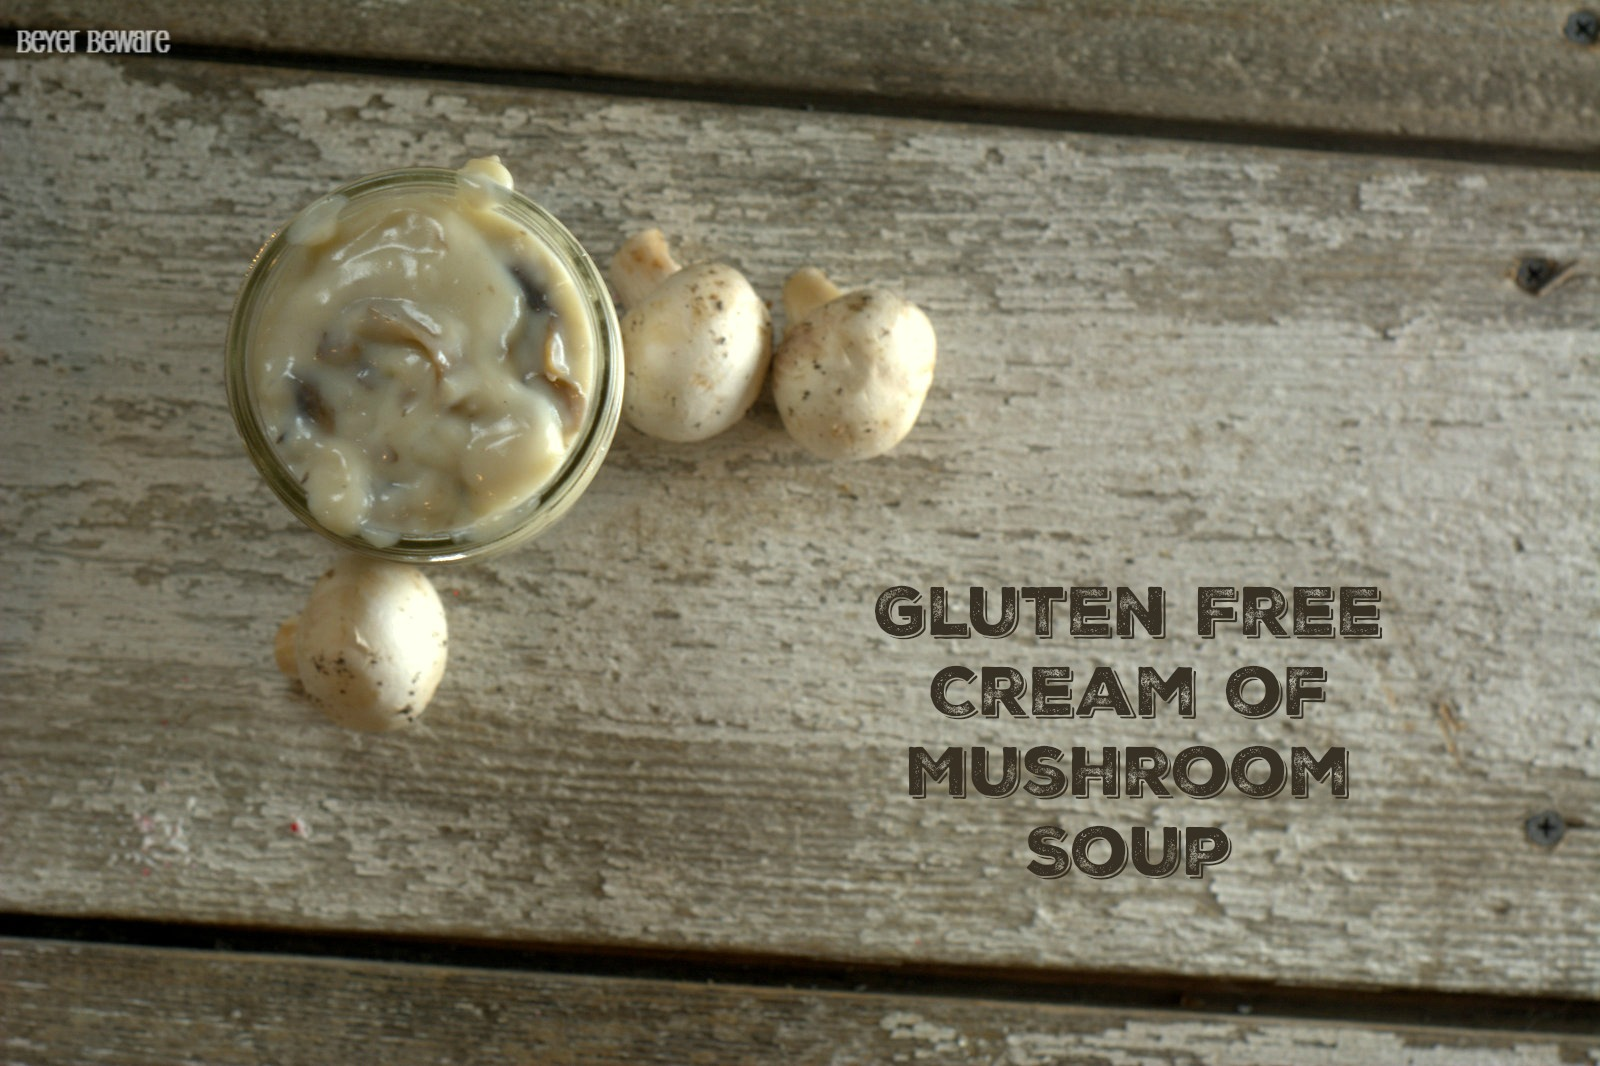 This easy Gluten Free Cream of Mushroom Soup is now a staple in my cooking for any recipe that calls for cream of mushroom soup.